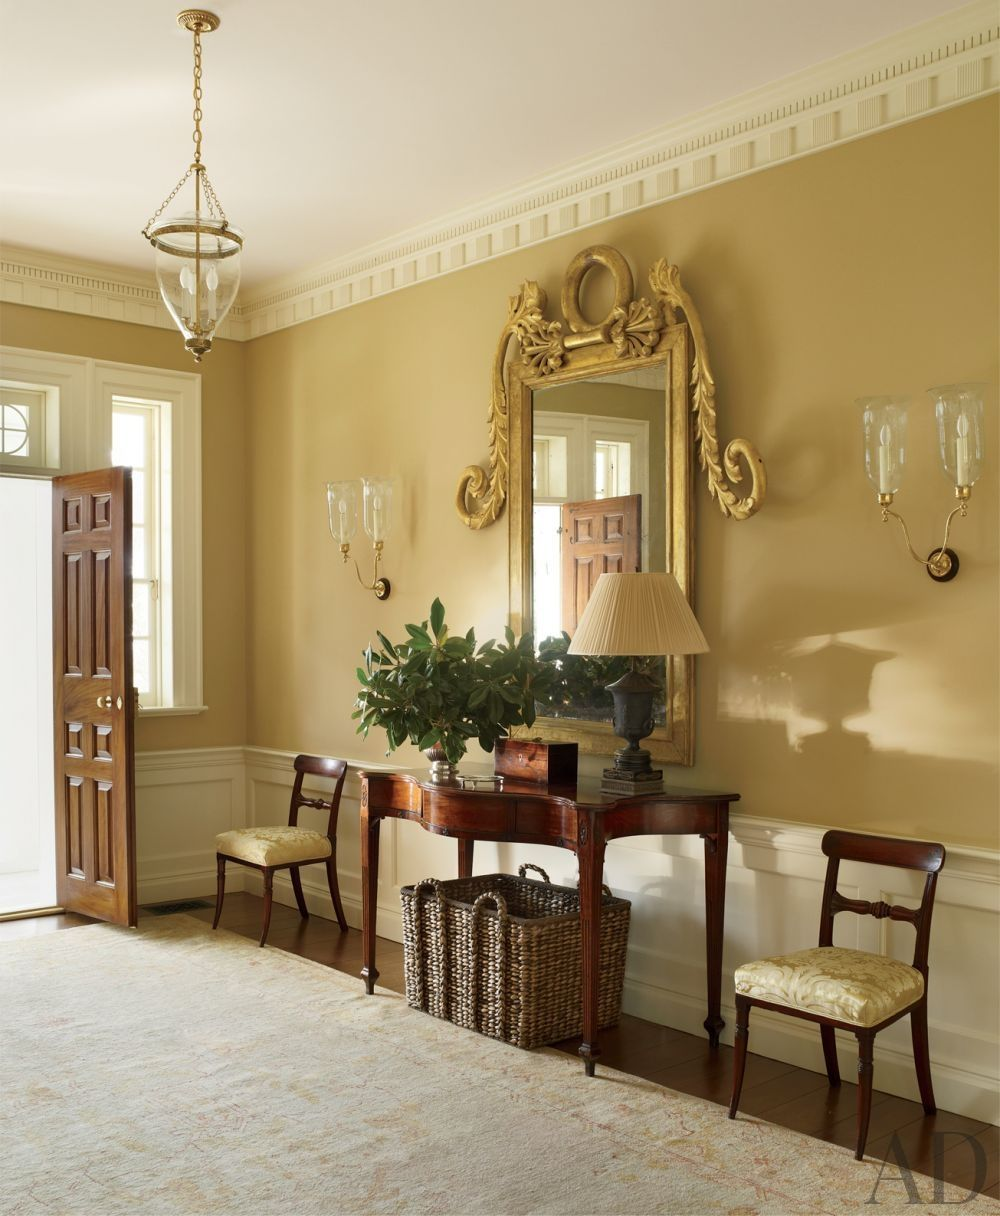 Entrance Hall Or Foyer : Traditional entrance hall by amelia t handegan inc and